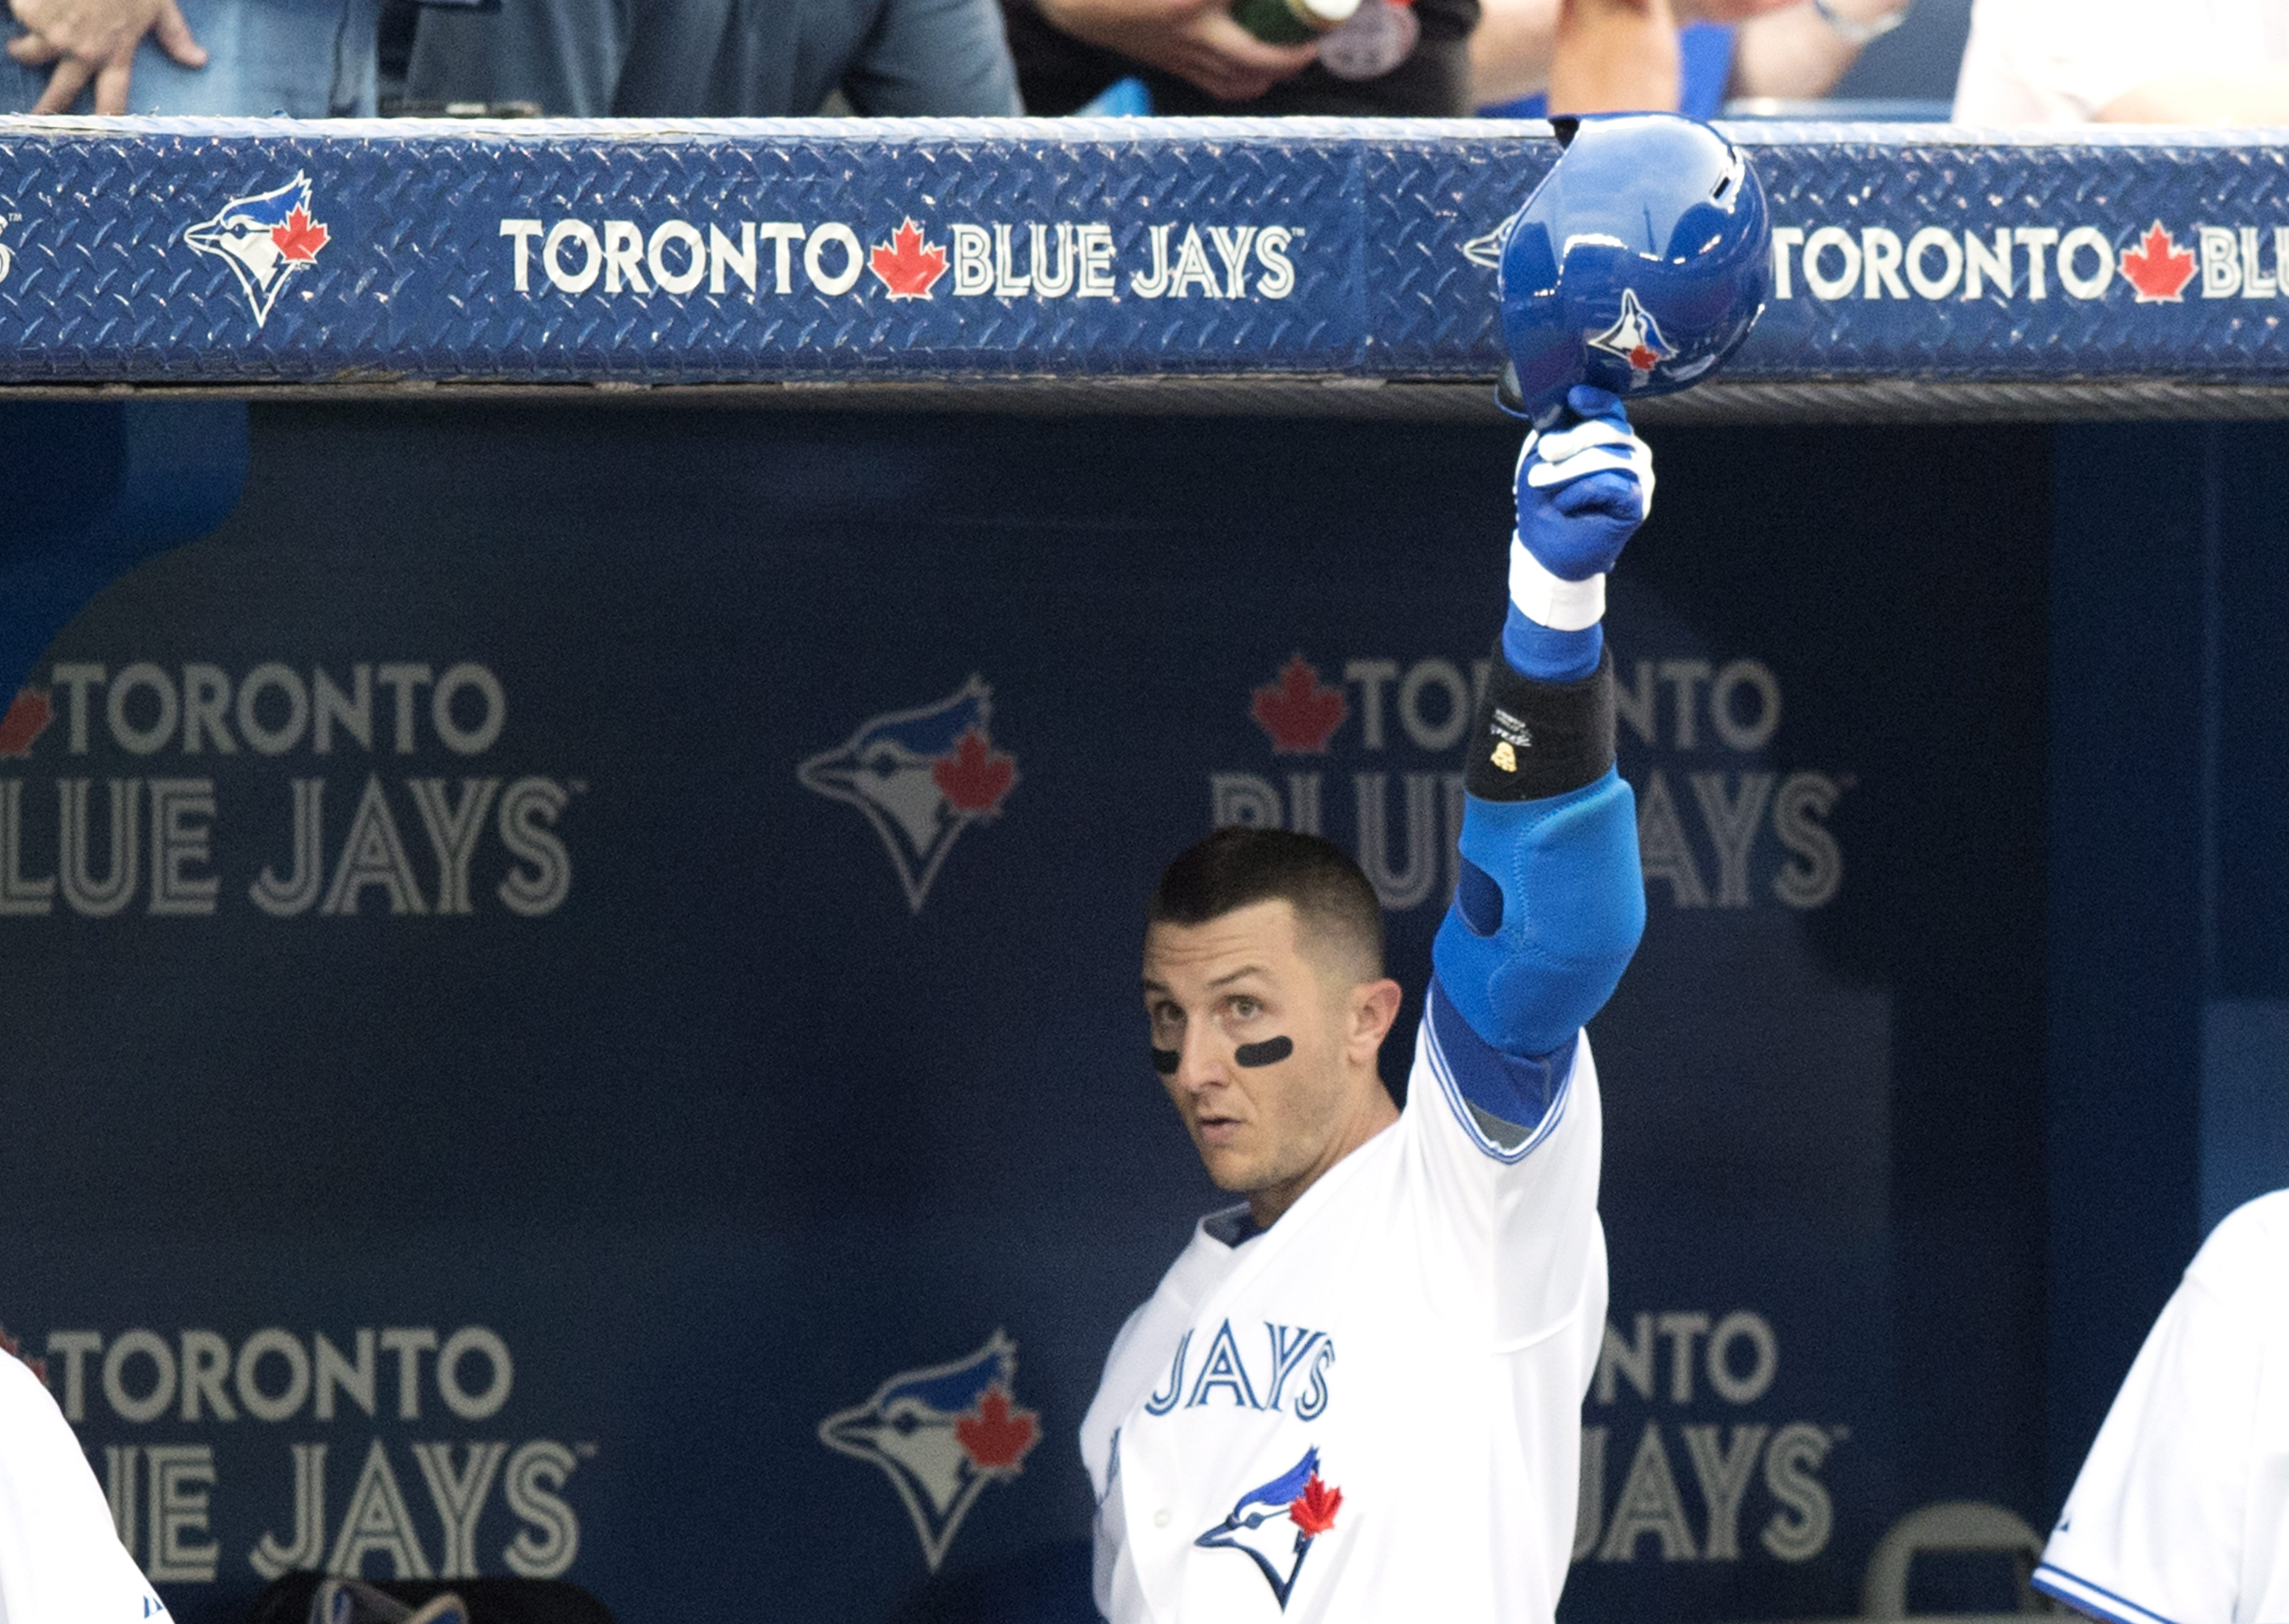 Toronto Blue Jays' Troy Tulowitzki tips his helmet after hitting a two-run home run during the third inning of a baseball game against the Philadelphia Phillies, Wednesday, July 29, 2015, in Toronto. (Darren Calabrese/The Canadian Press via AP) MANDATORY